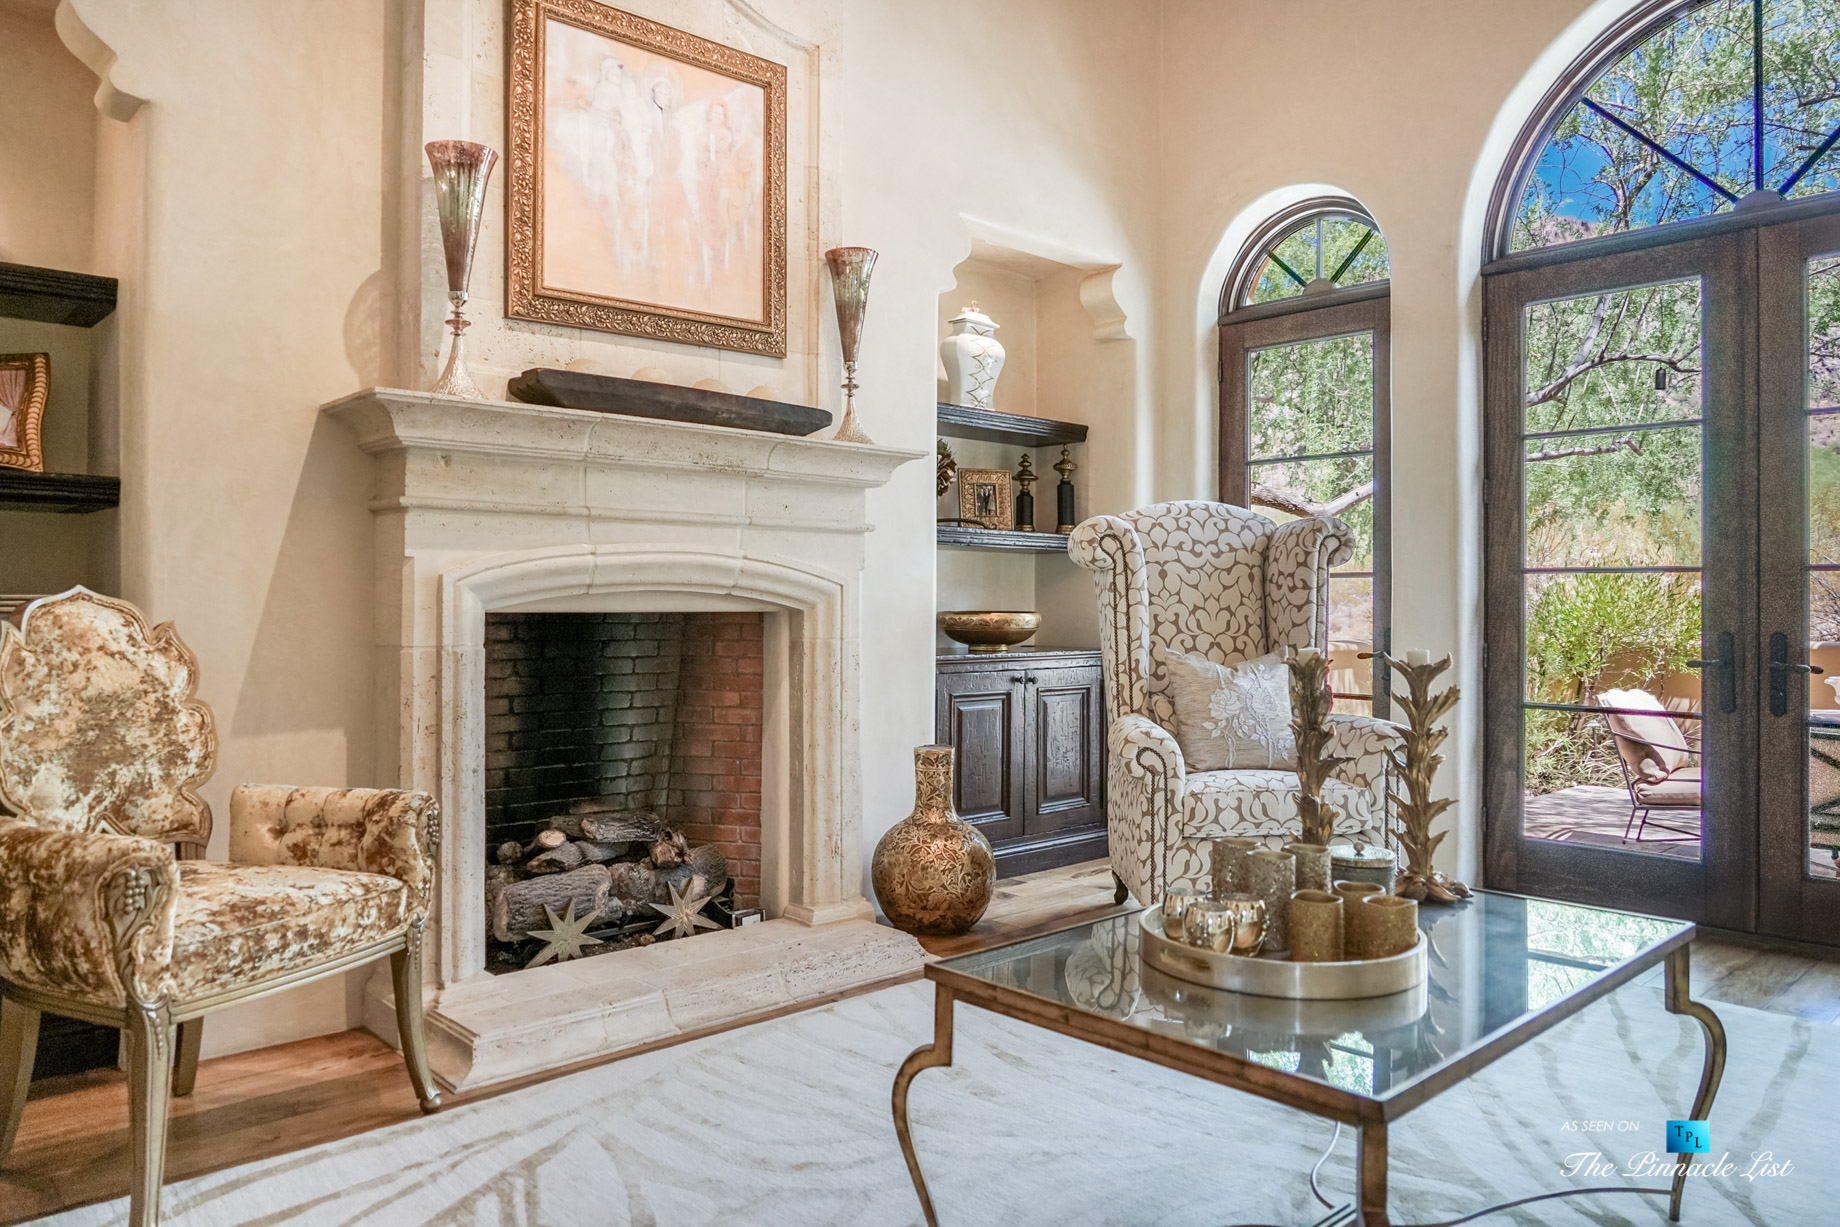 6539 N 31st Pl, Phoenix, AZ, USA - Living Room Fireplace - Luxury Real Estate - Biltmore Mountain Estates - Spanish Colonial Home